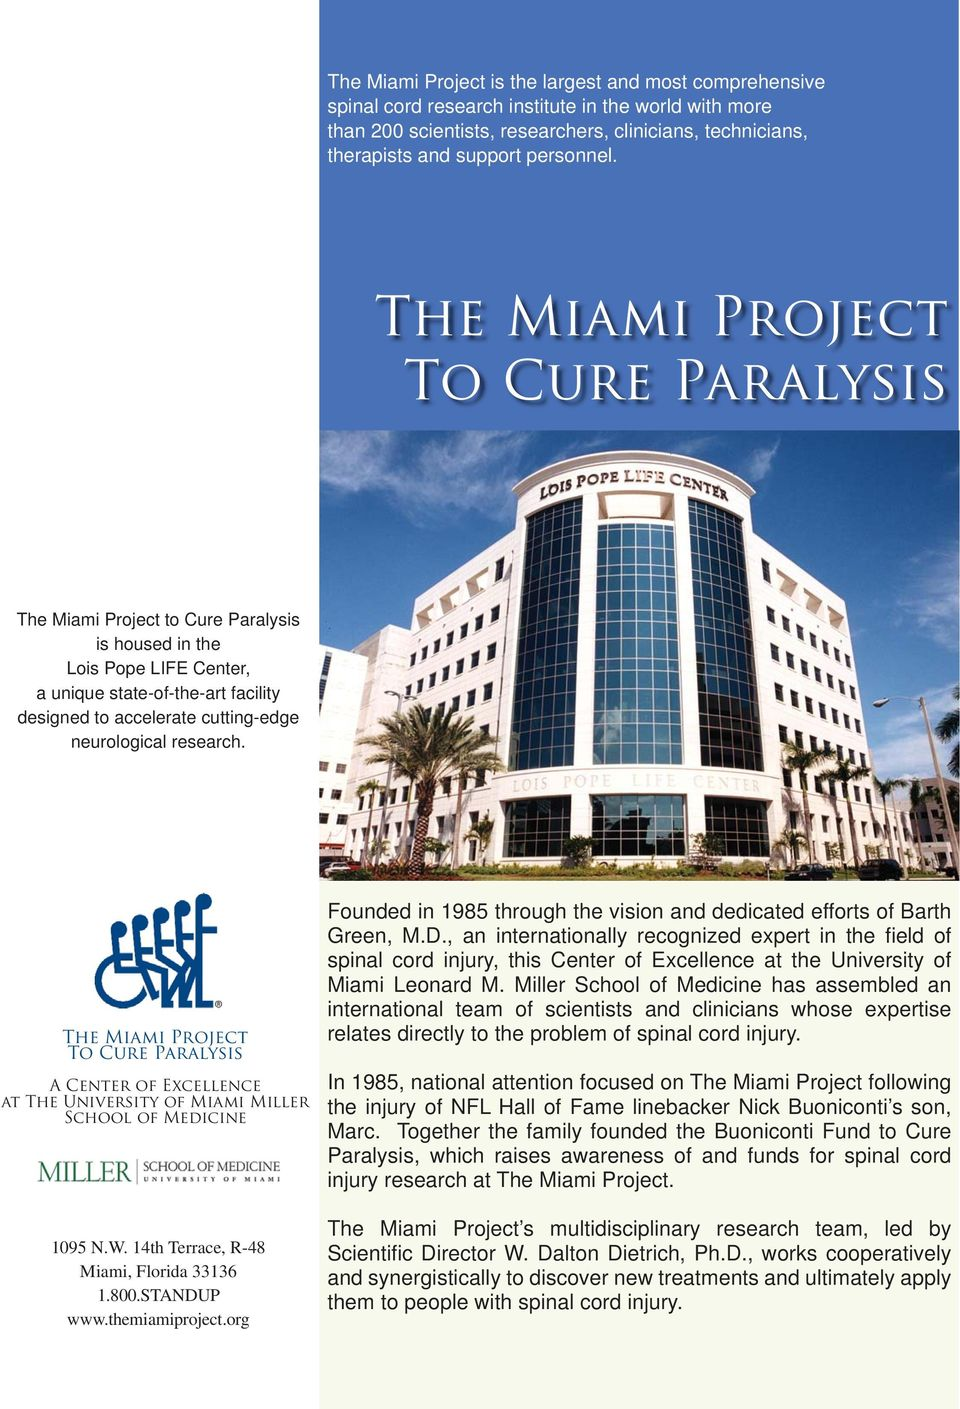 The Miami Project To Cure Paralysis The Miami Project to Cure Paralysis is housed in the Lois Pope LIFE Center, a unique state-of-the-art facility designed to accelerate cutting-edge neurological